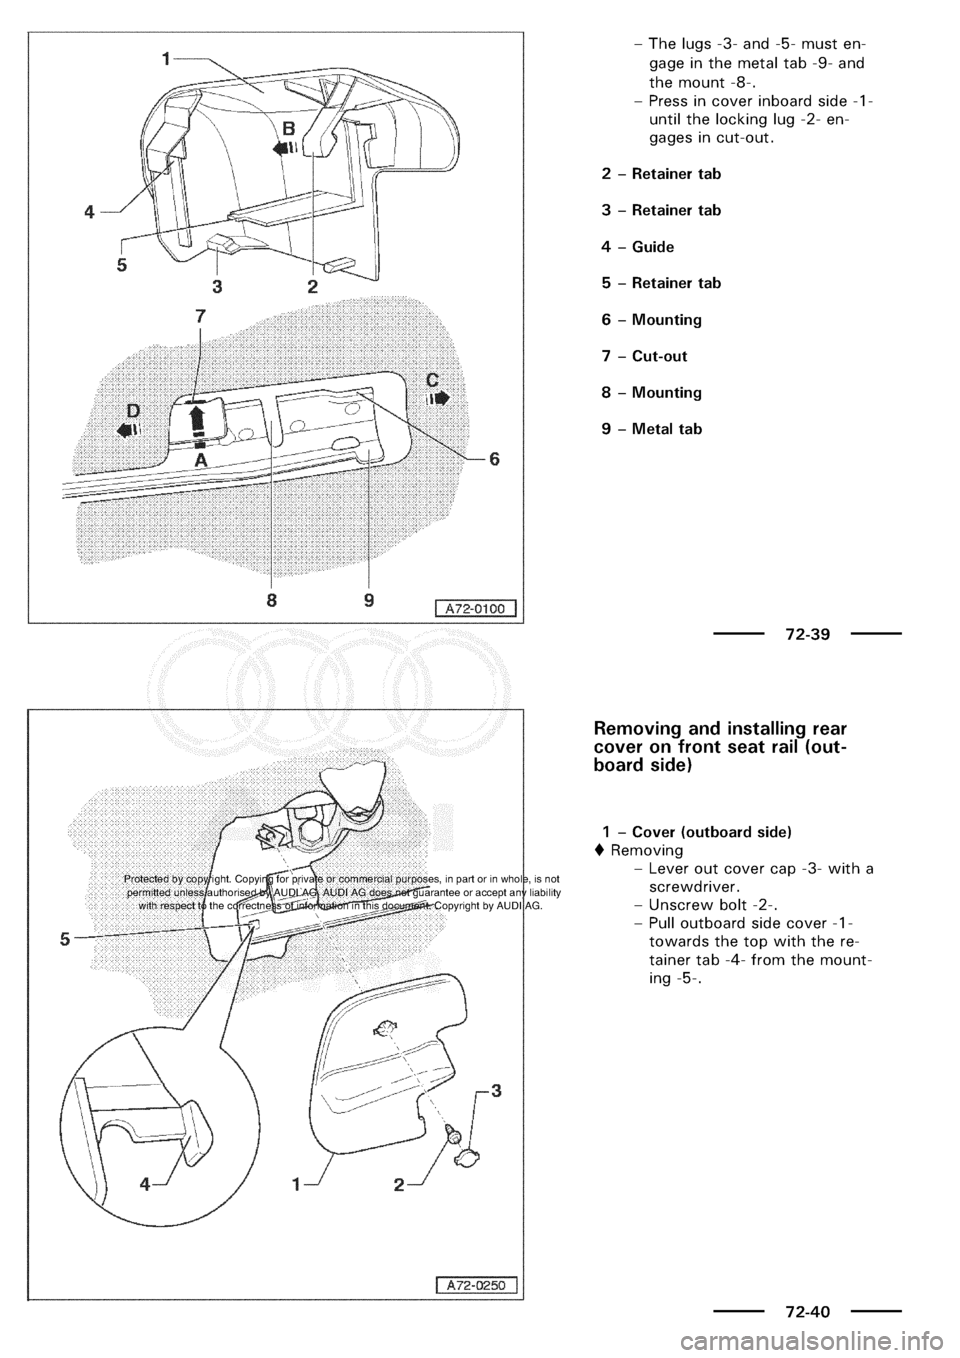 AUDI A3 2000 8L / 1.G General Body Assembly Interior Workshop Manual